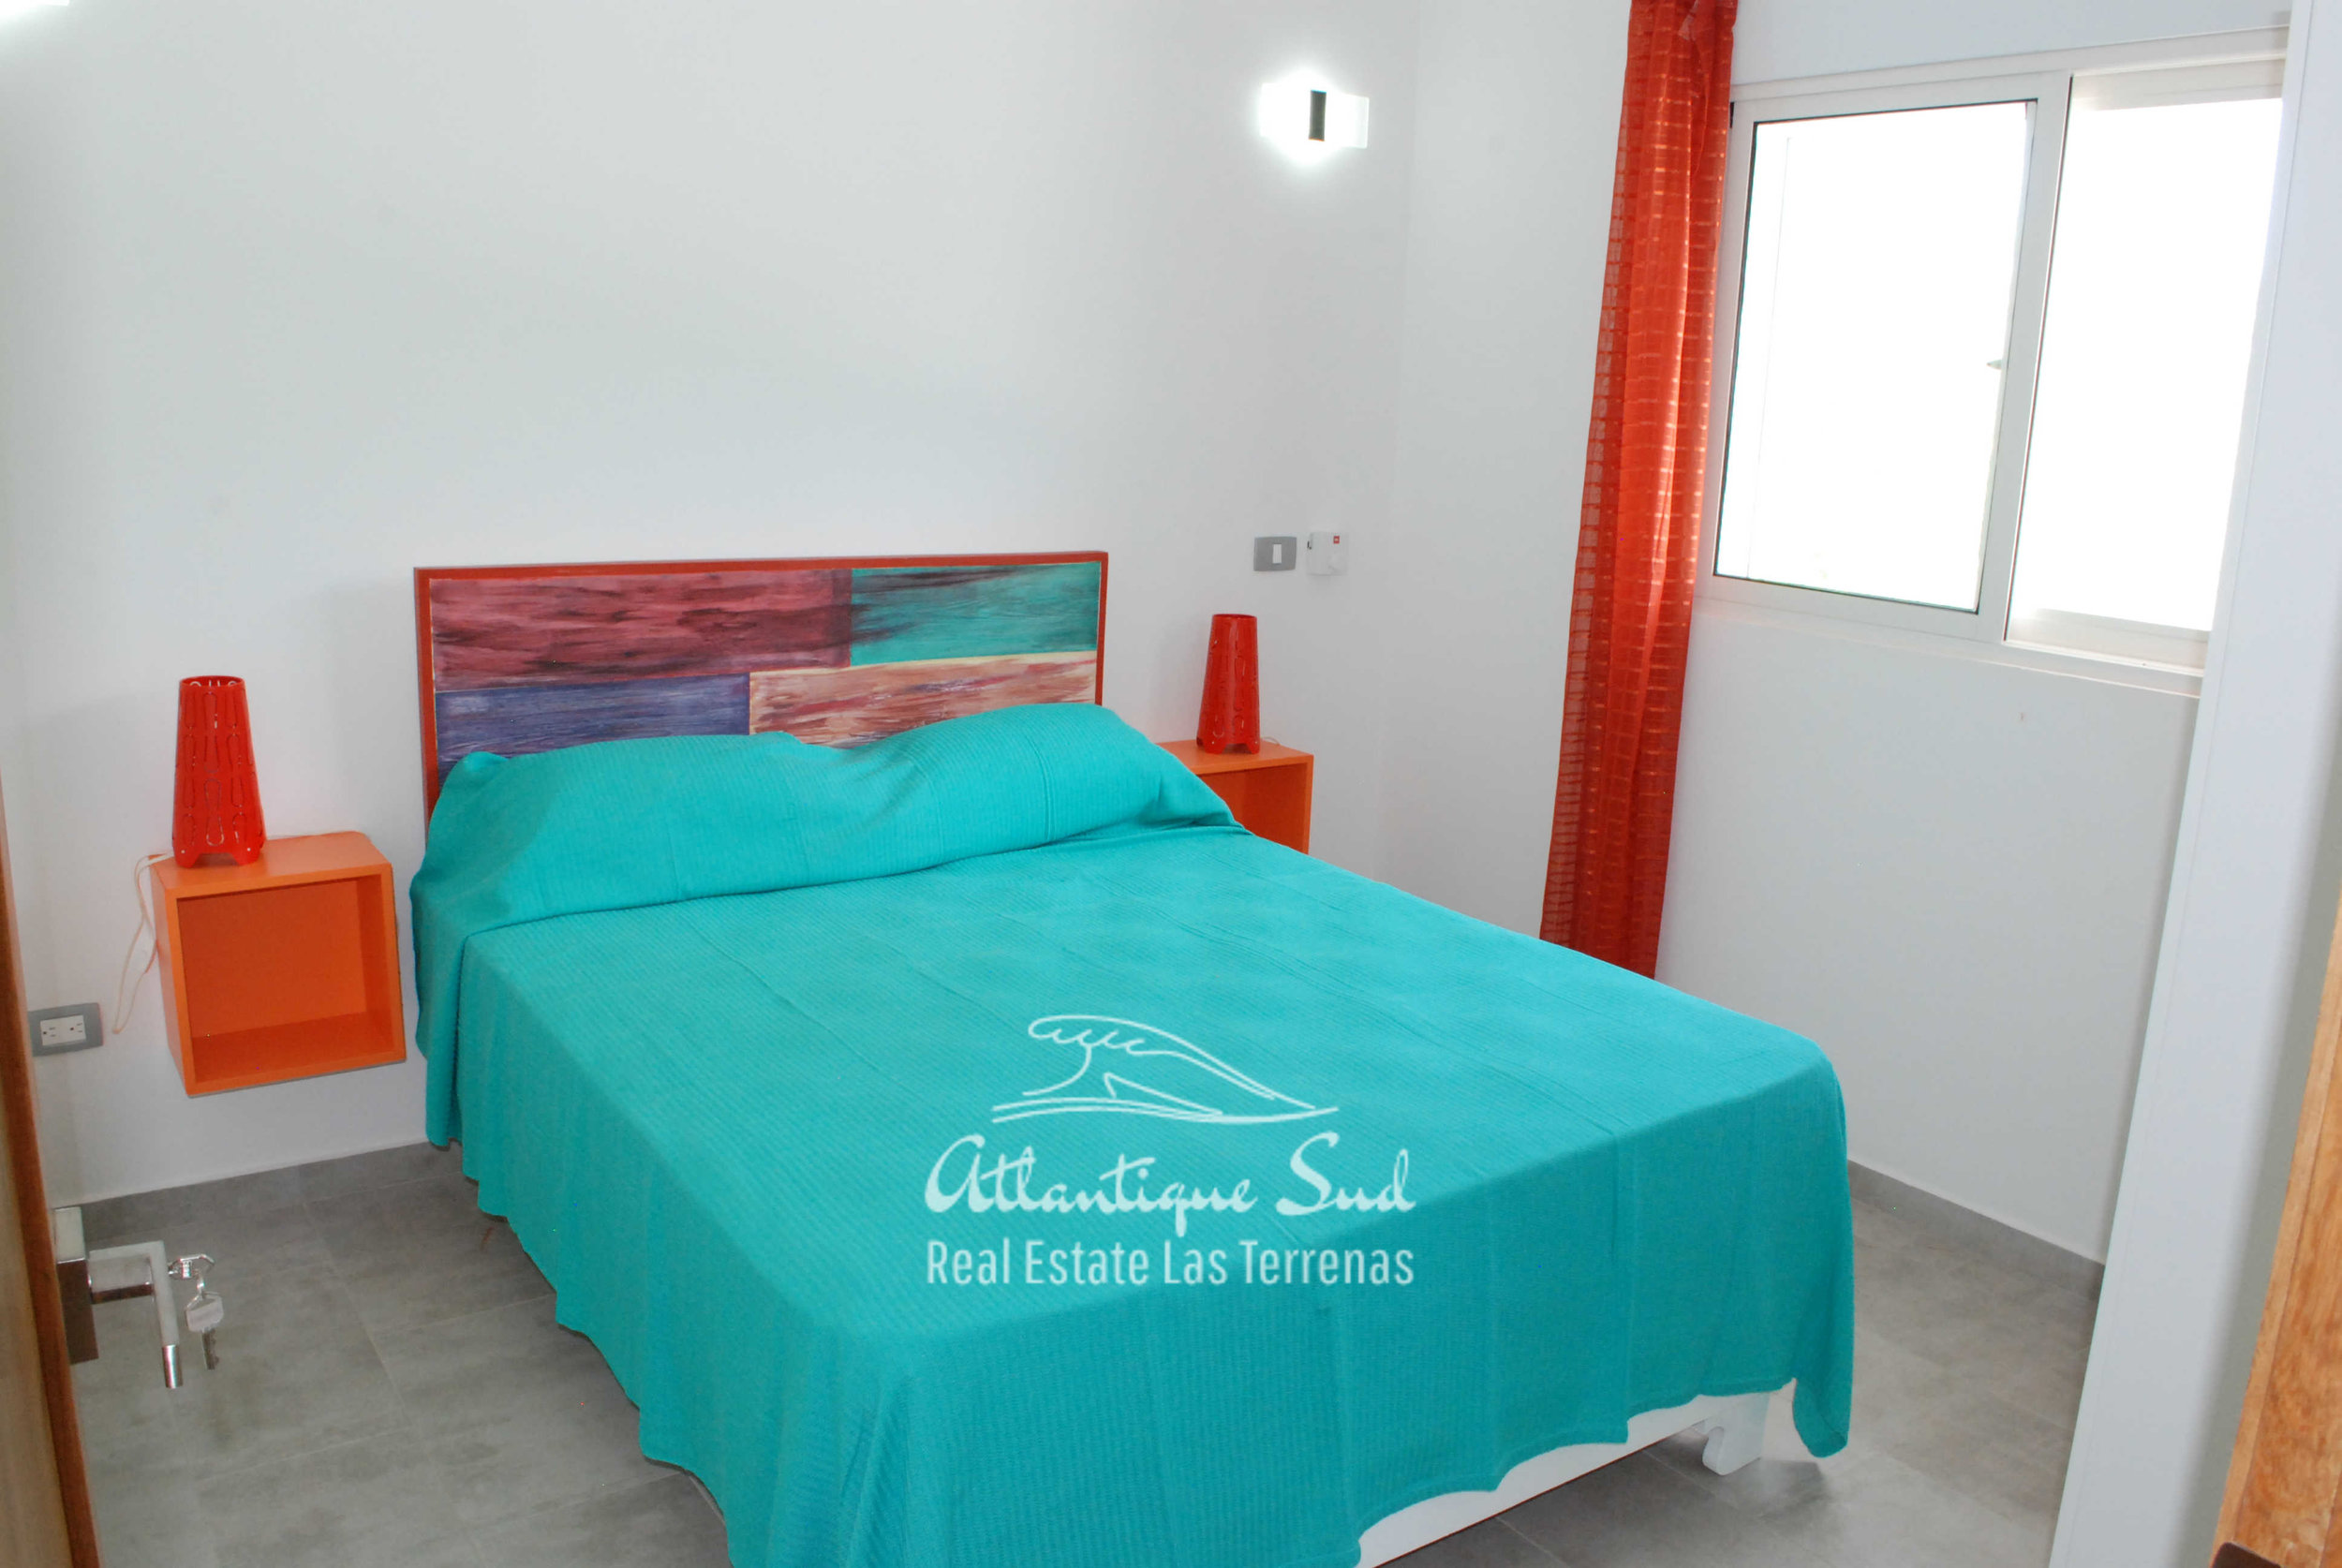 New project of commodious townhouses Real Estate Las Terrenas Atlantique Sud11.jpg